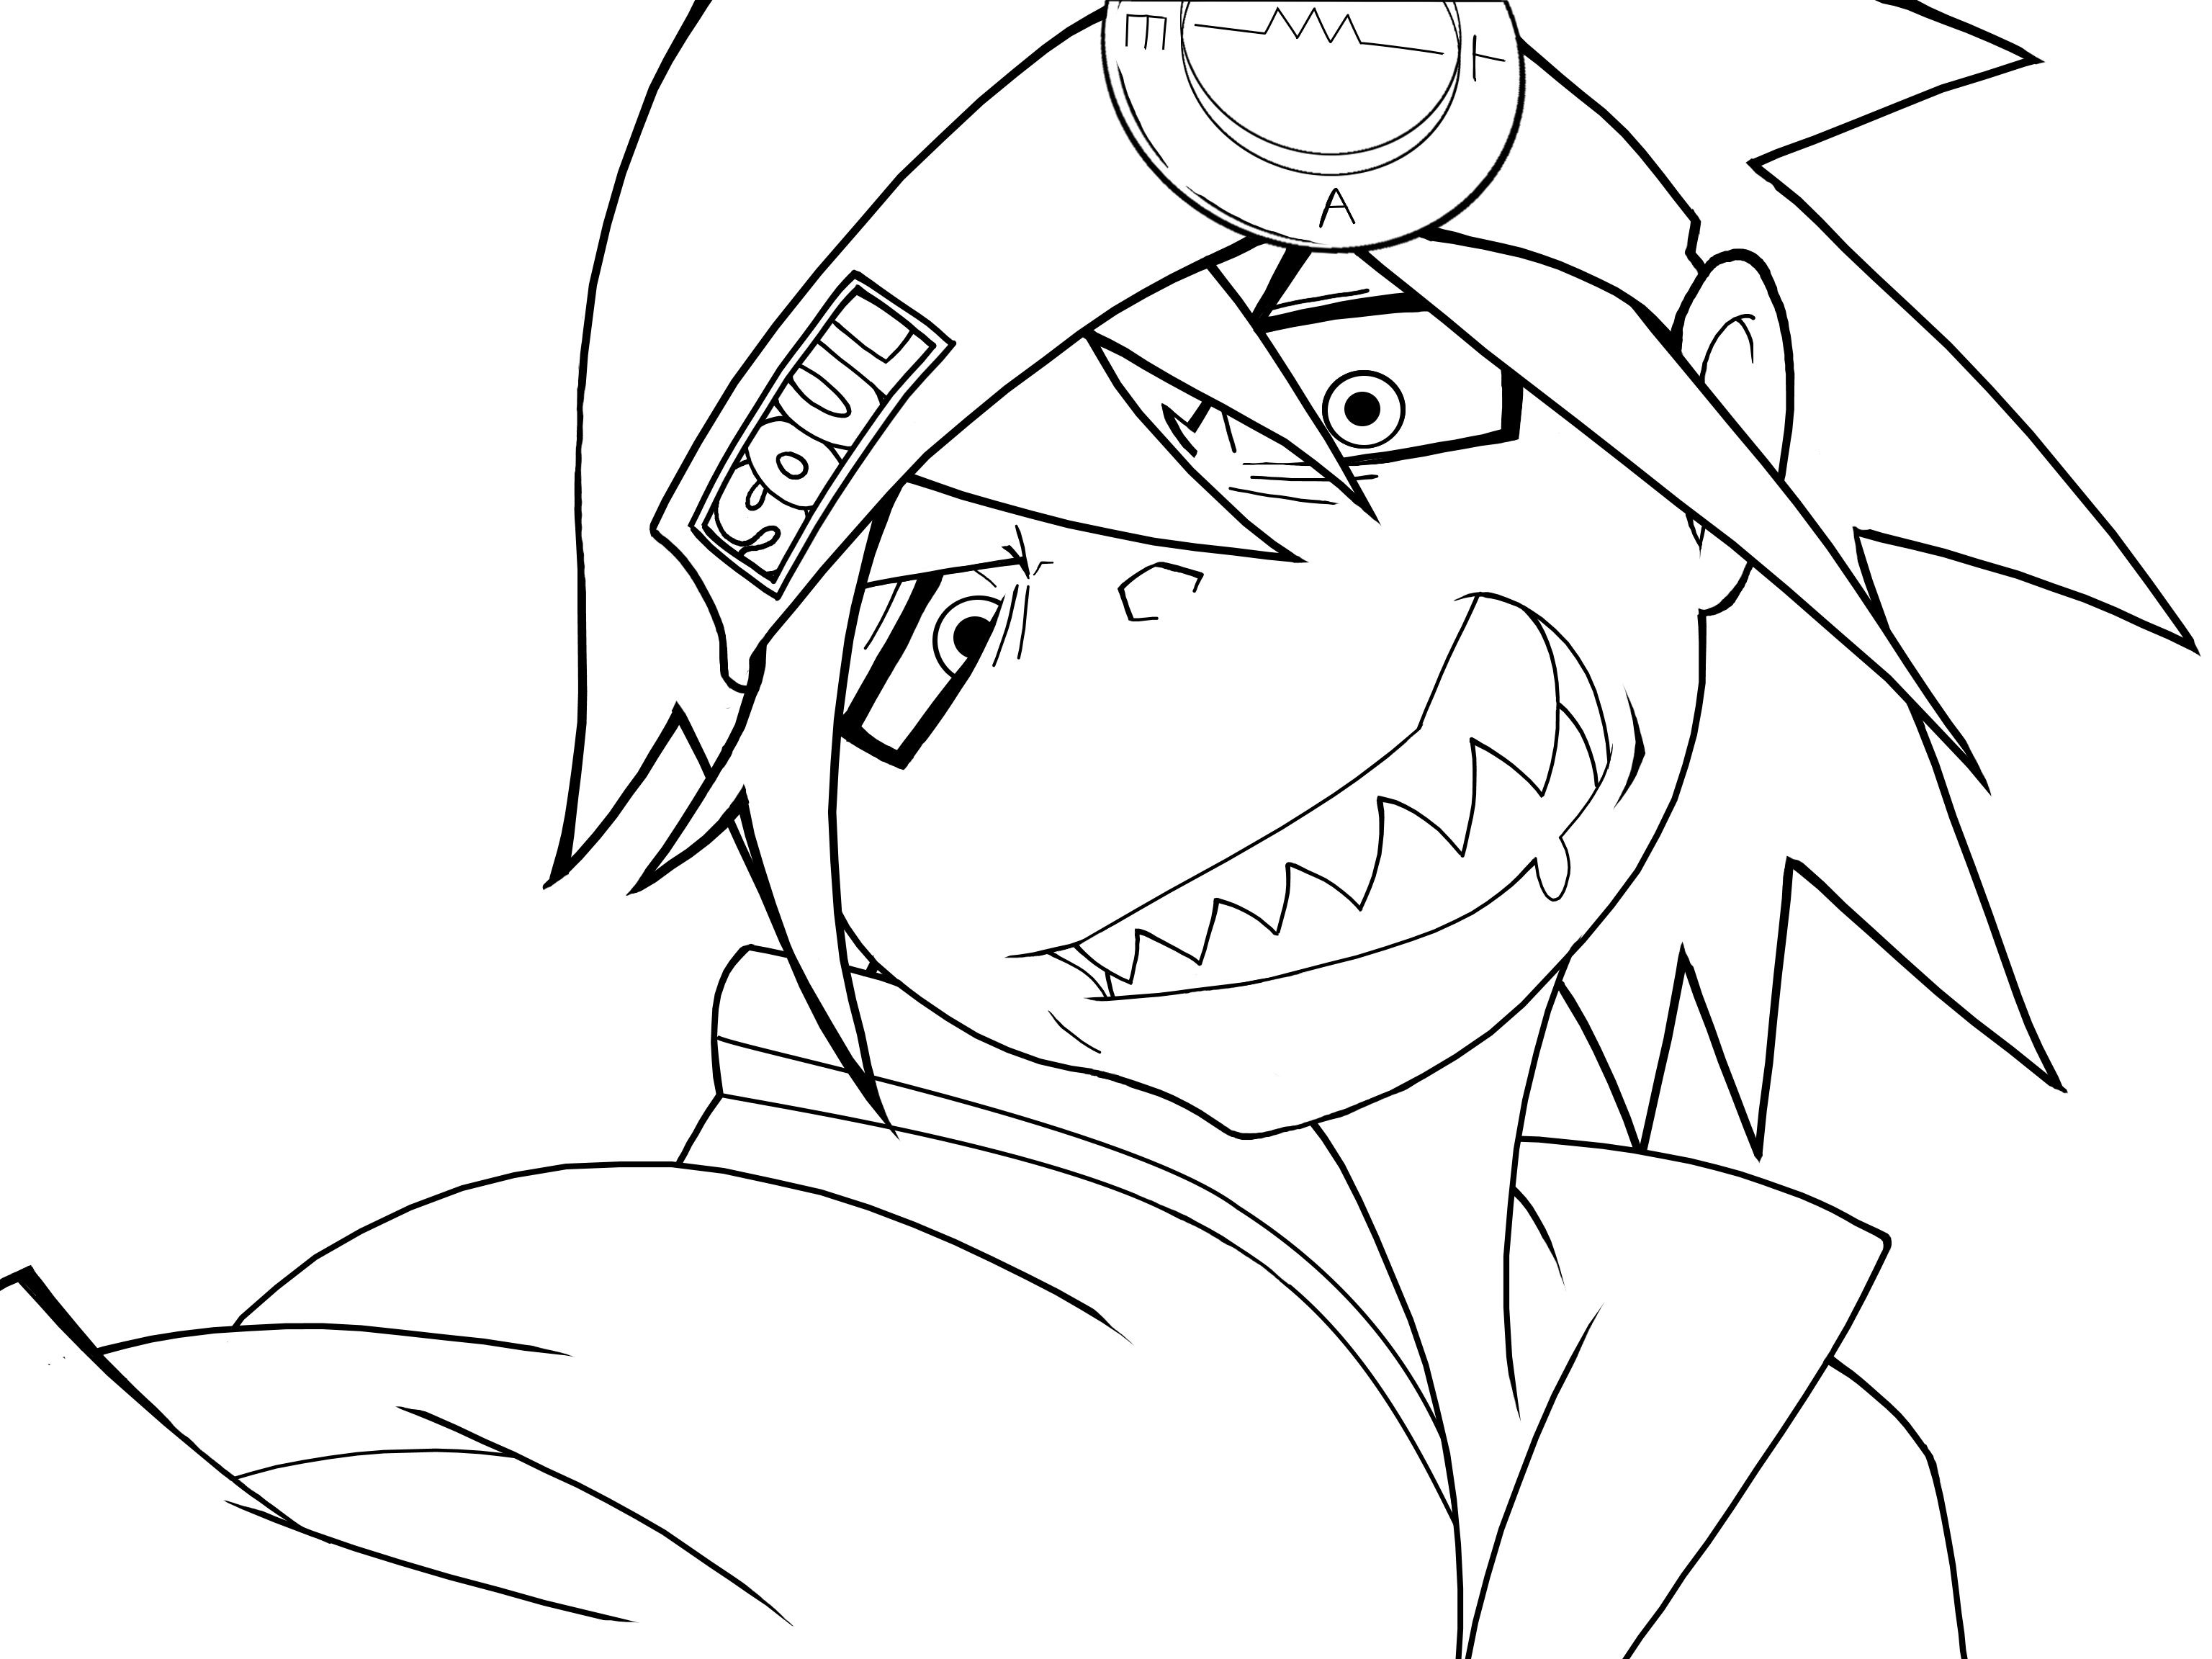 3072x2304 Soul Eater Evans Lineart By Kaerumiji Lineart Soul Eater